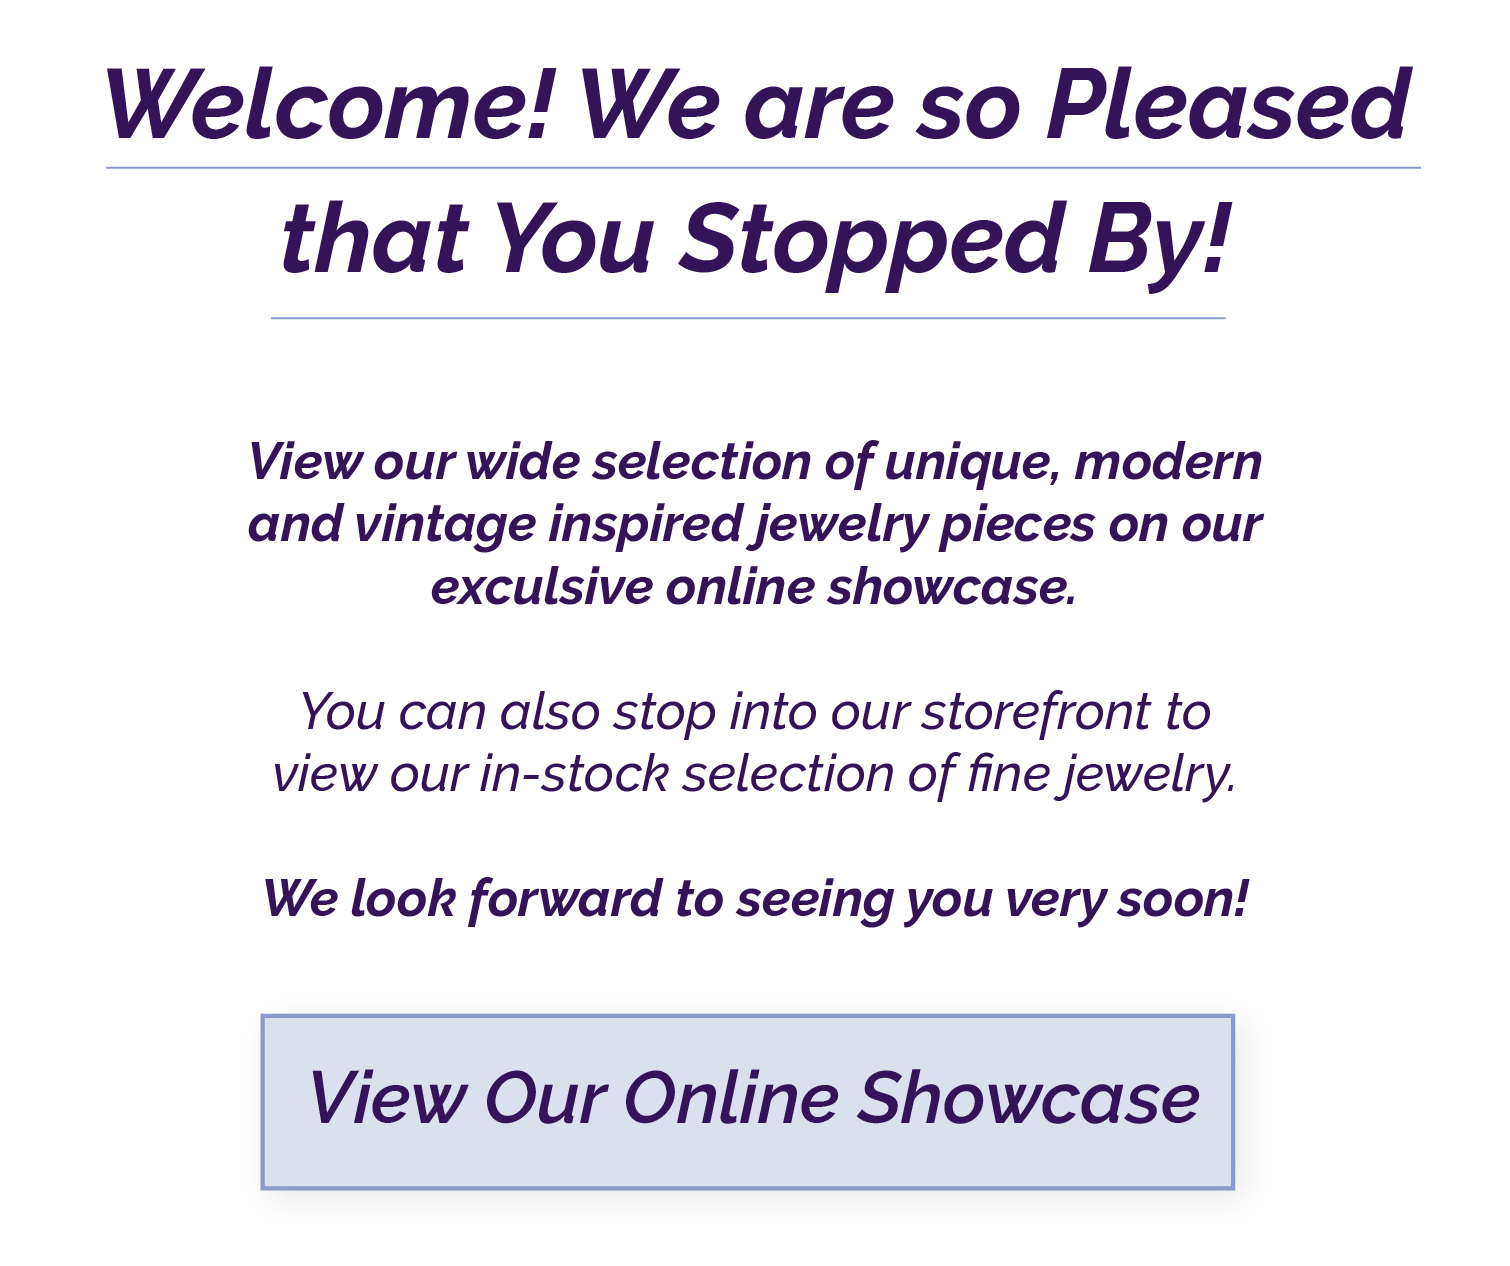 view_our_online_showcase